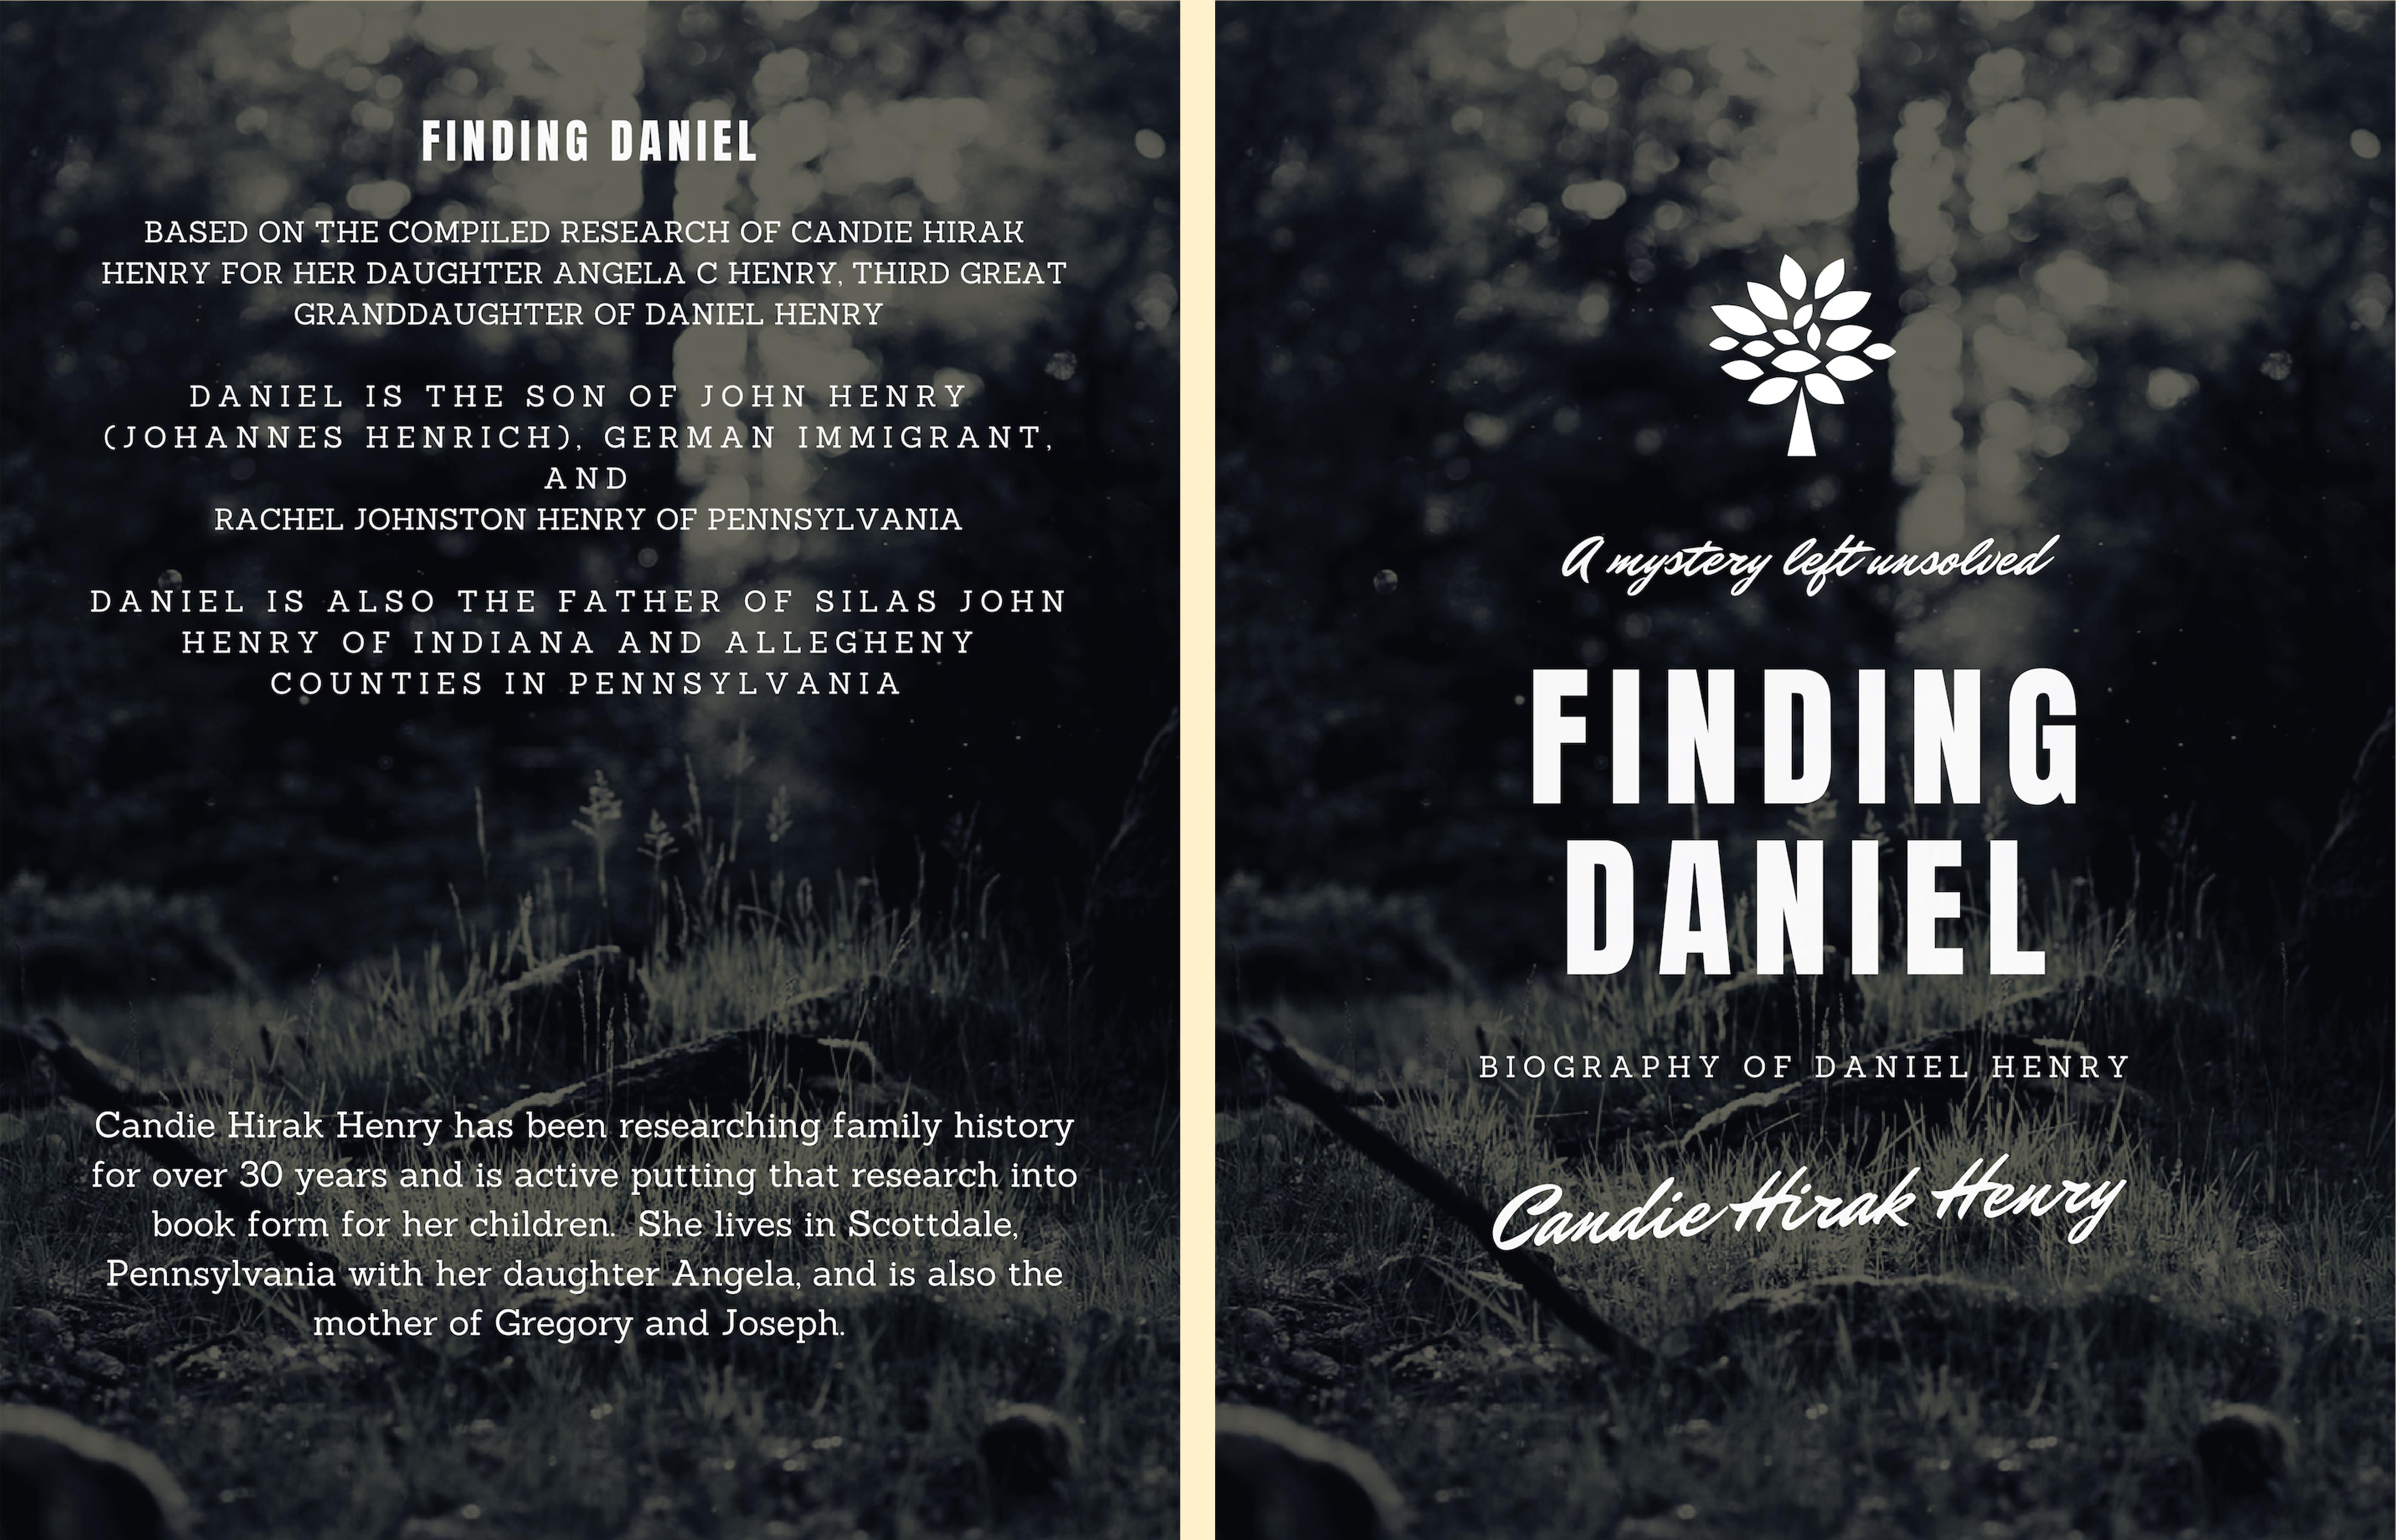 Finding Daniel cover image